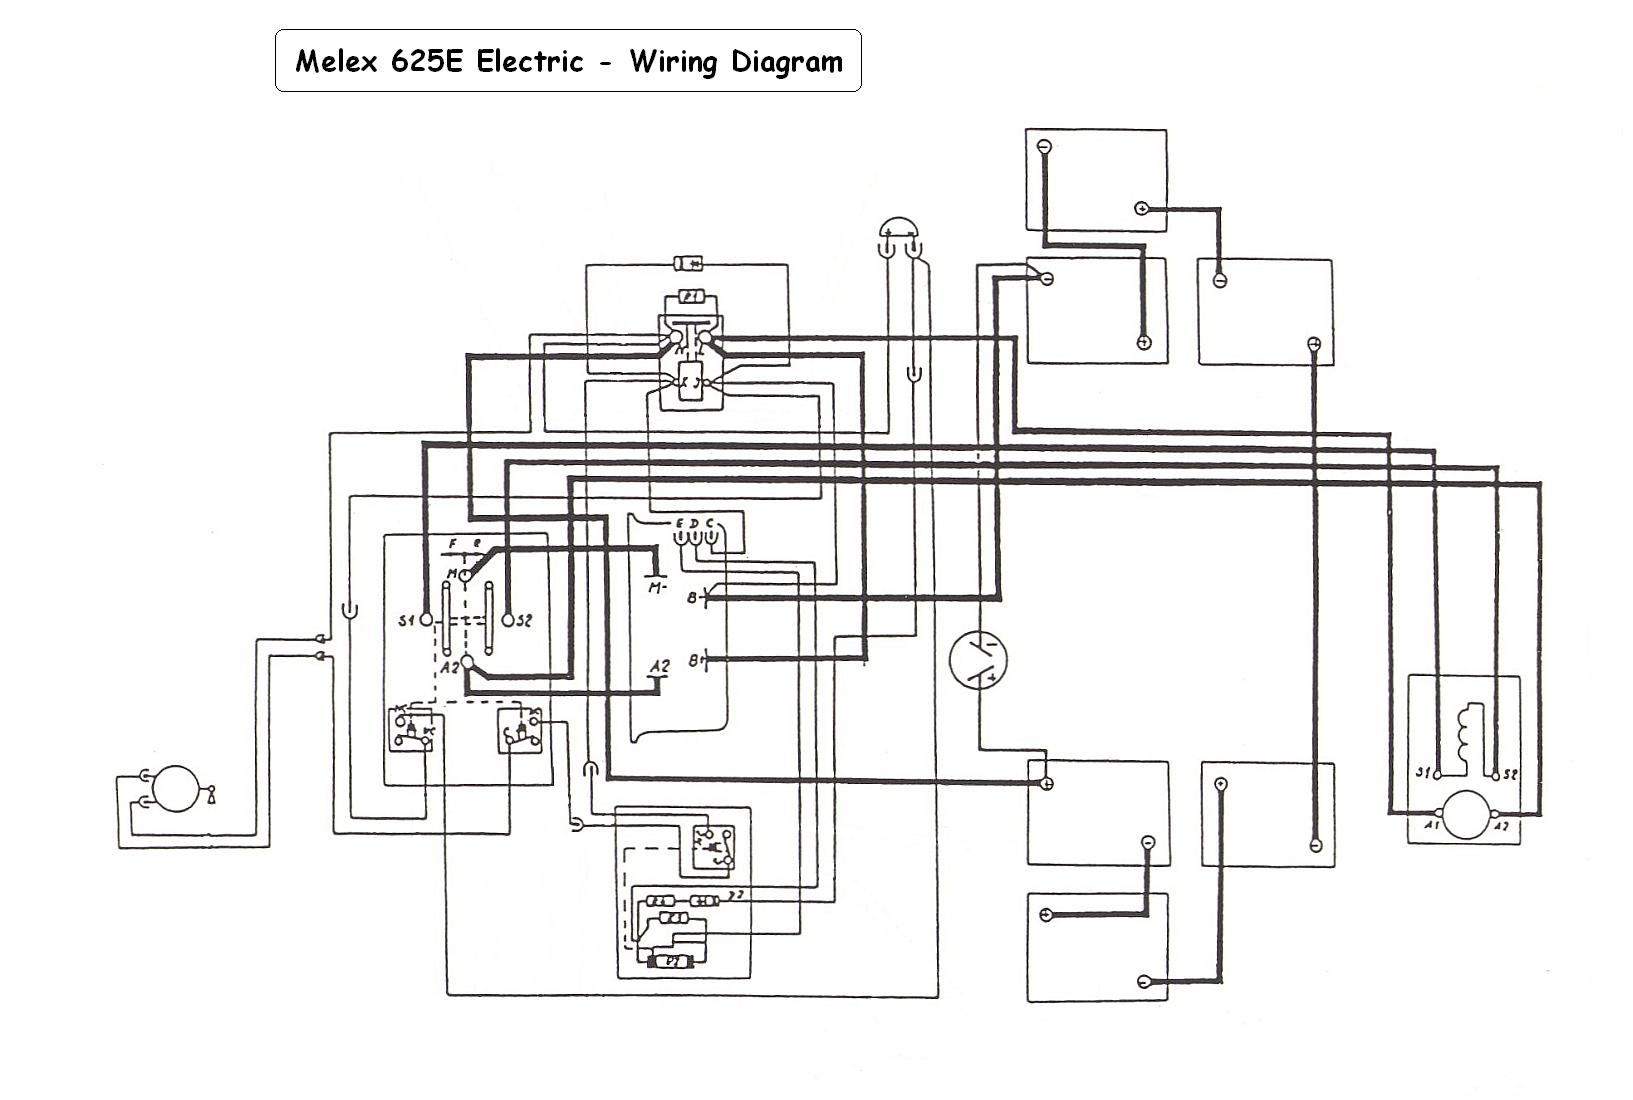 96 Porsche 944 Engine Diagram together with Citroen C5 Seat Wiring Diagram furthermore David Brown 990 Wiring Diagram additionally 2007 Acura Tsx Parts furthermore Spark Plugs 2004 Chrysler Pacifica 3 5 Engine Diagram. on ferrari wiring diagrams